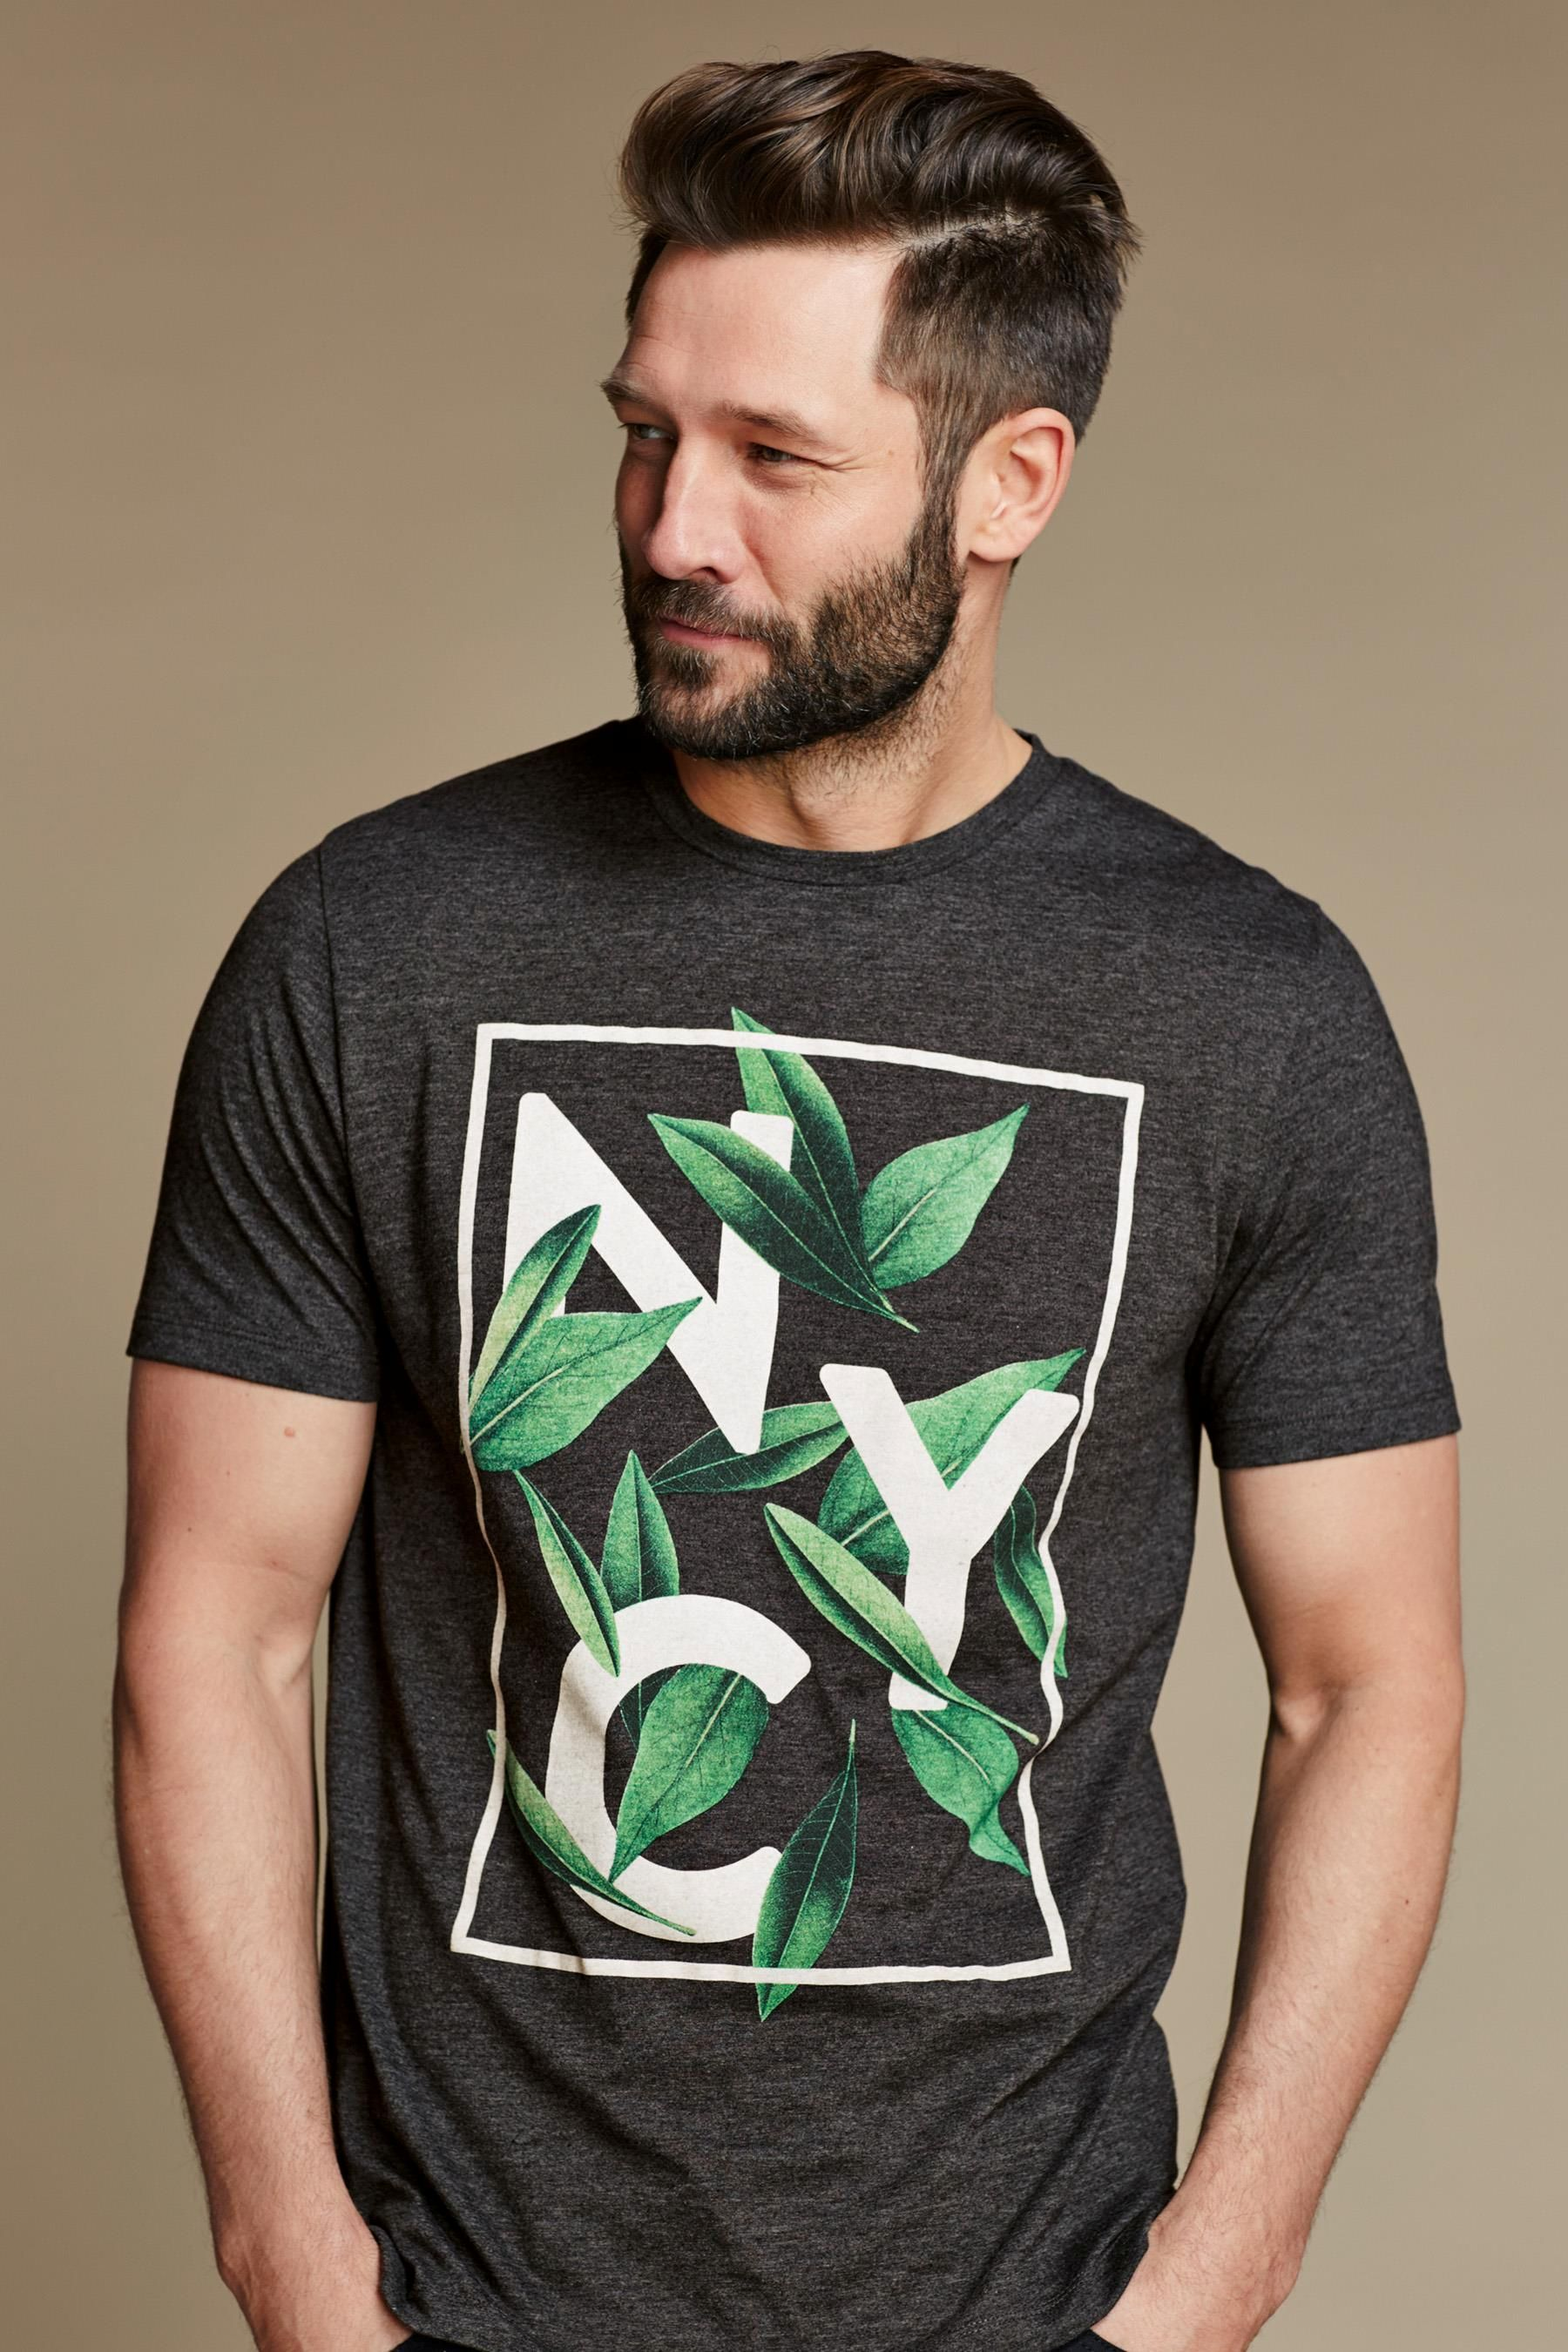 f8d3f14d21 Buy Charcoal NYC Leaf T-Shirt from the Next UK online shop good